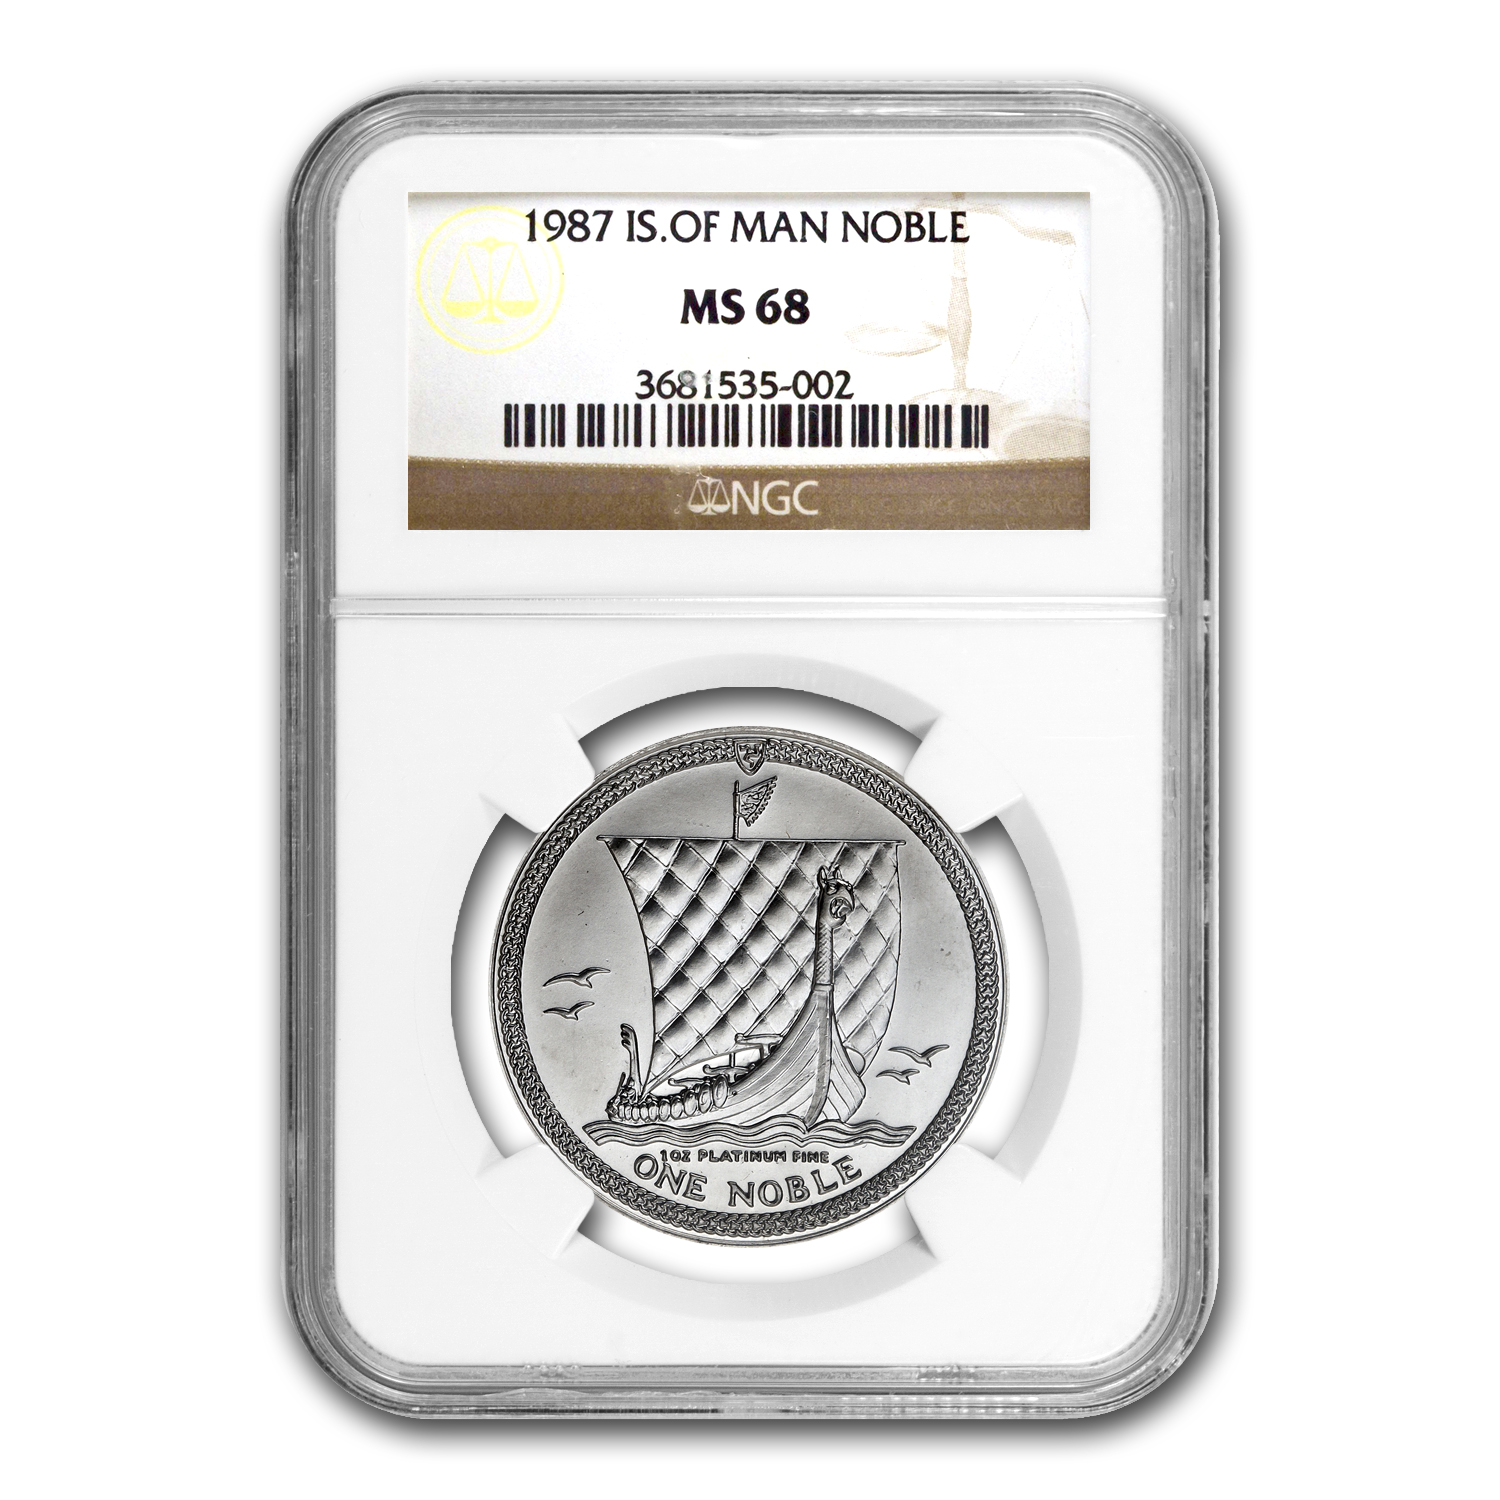 1987 Isle of Man 1 oz Platinum Noble MS-68 NGC